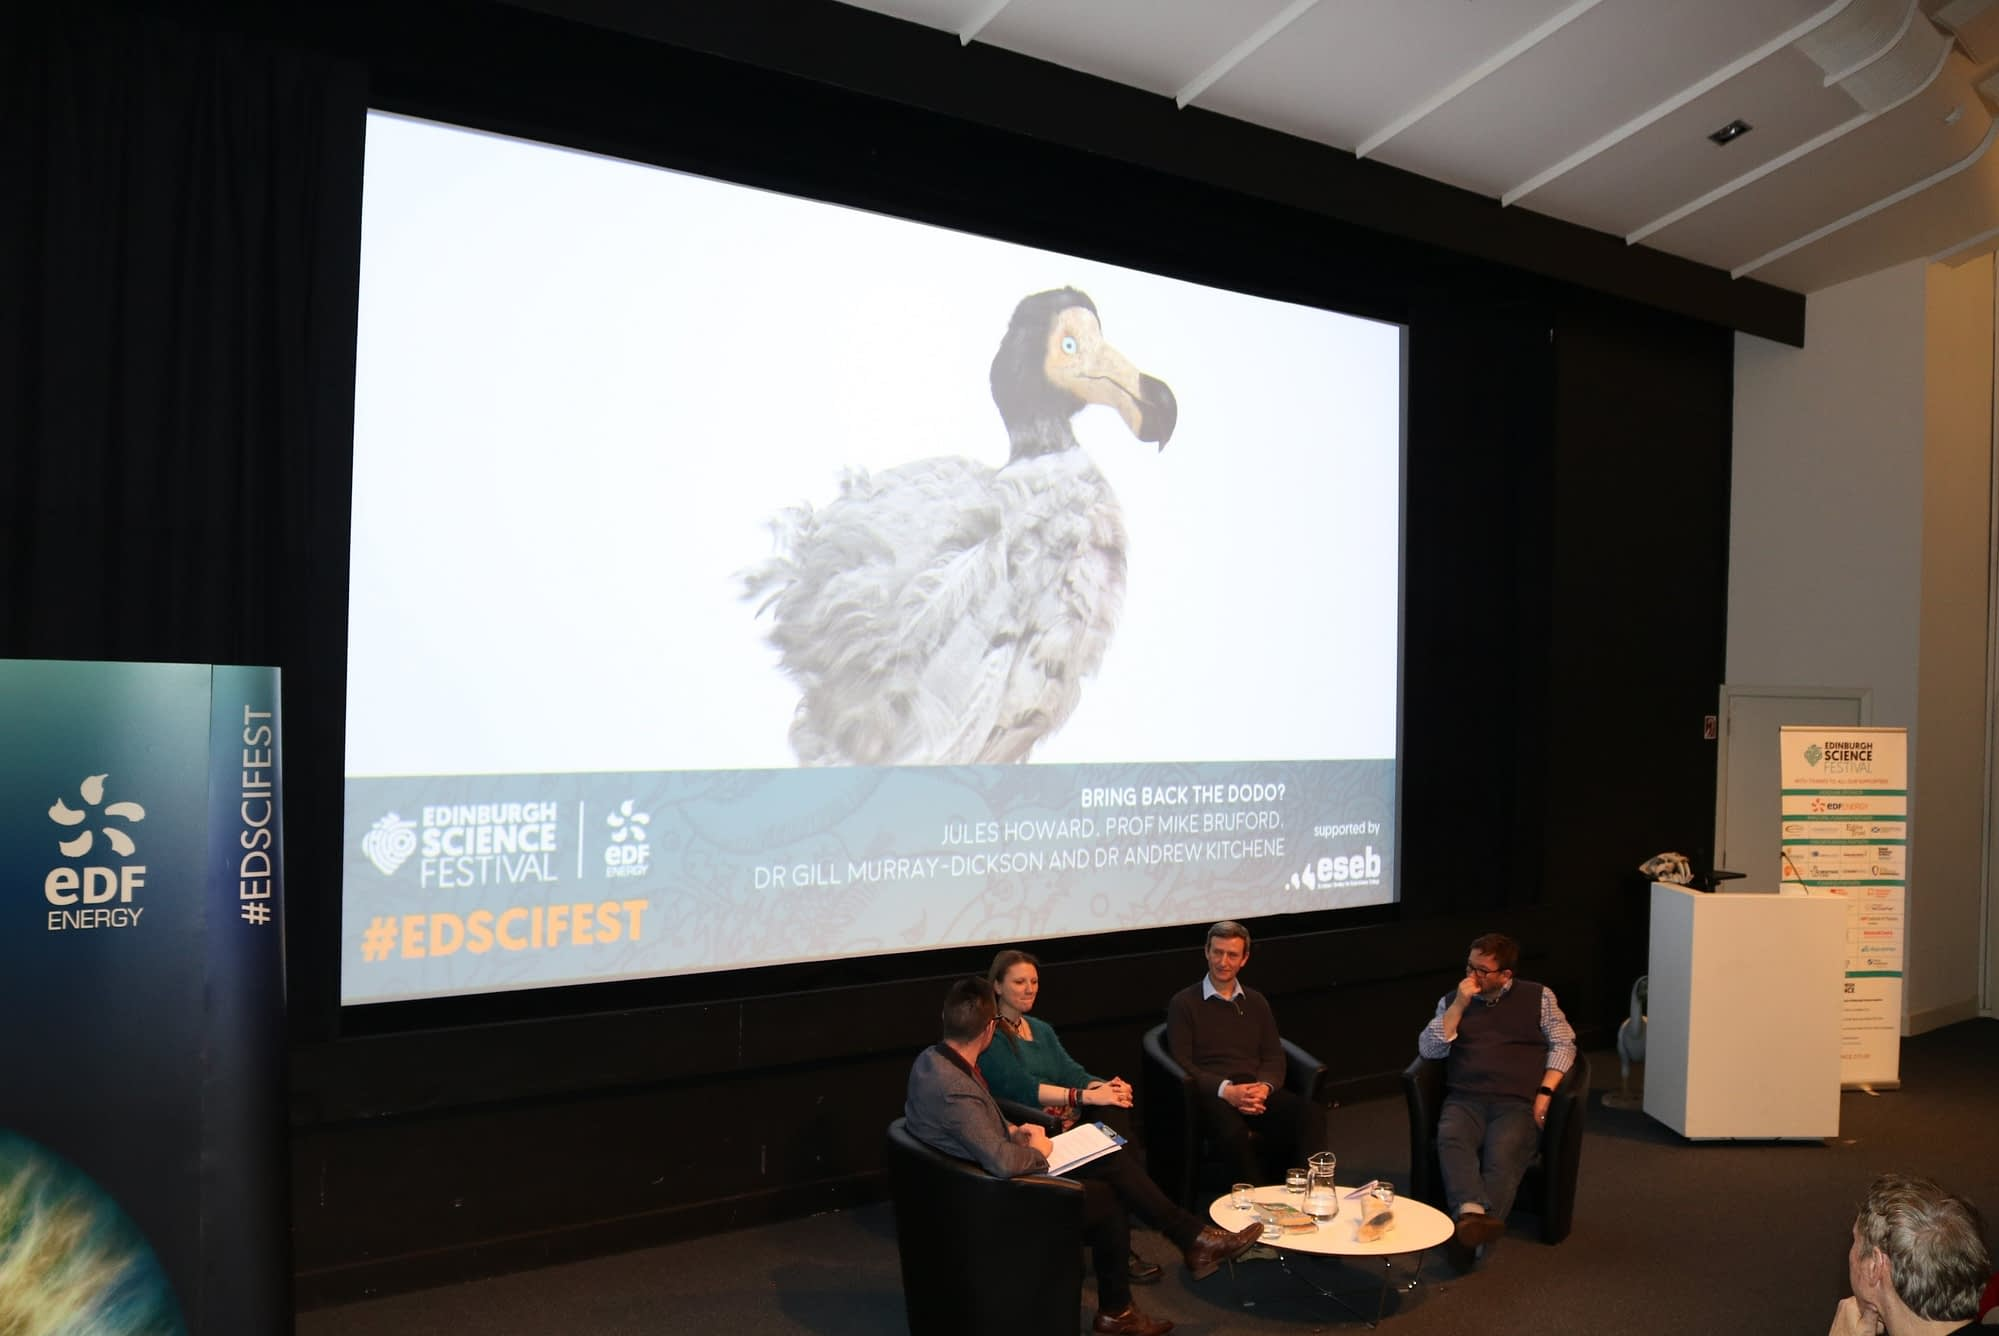 De-extinction, dinosaurs and dodos at the Edinburgh Science Festival